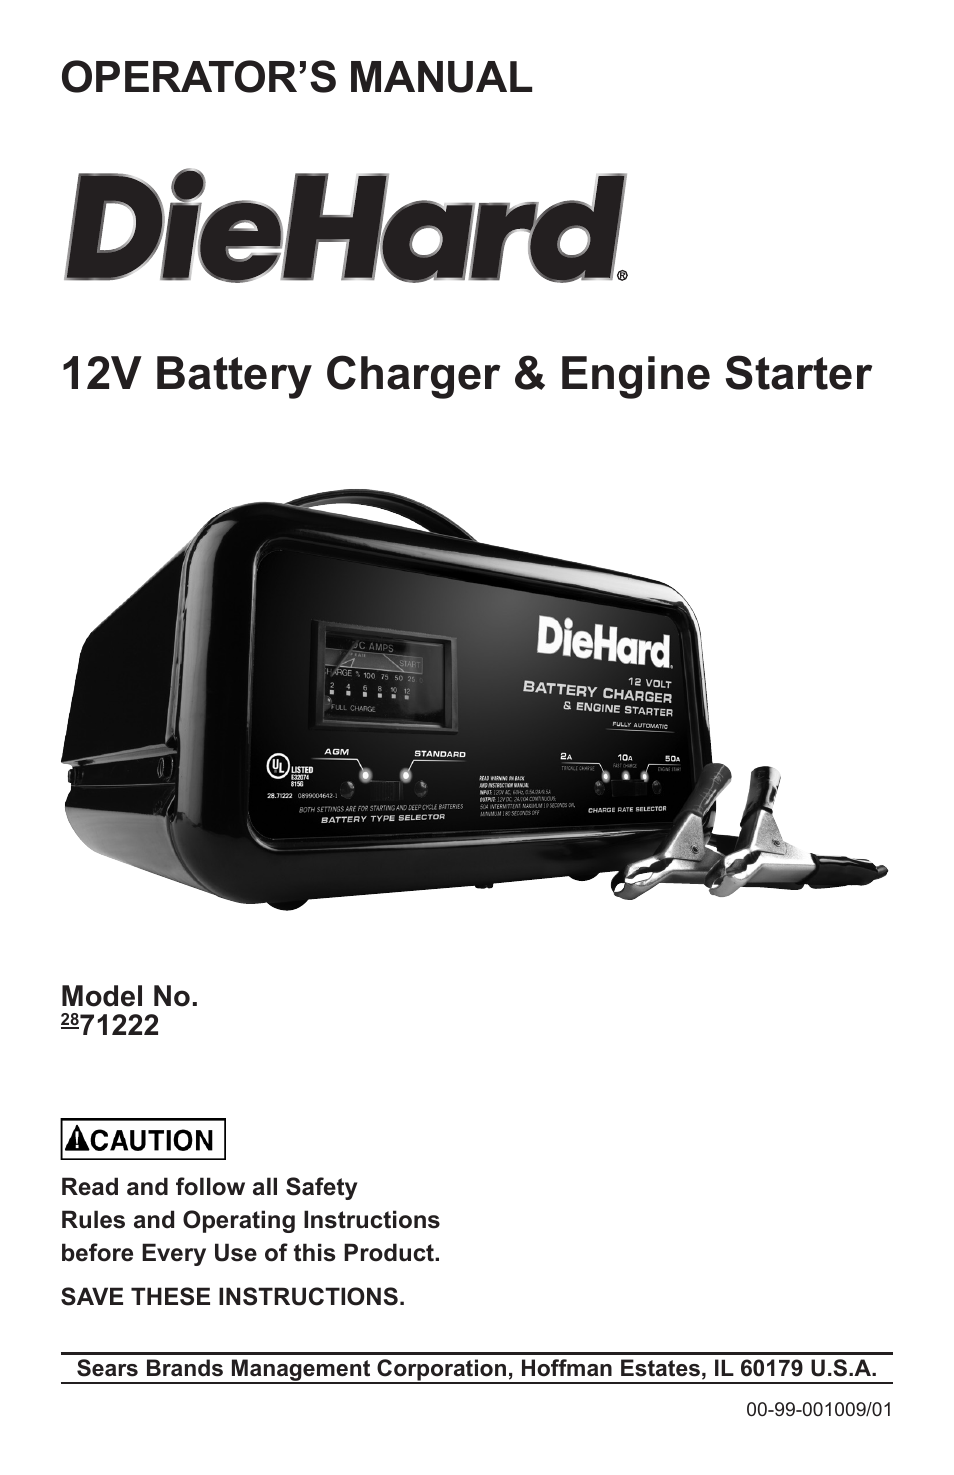 sears 12v battery charger engine starter 2871222 user manual 13 rh manualsdir com Bernice LA 71222 Bernice LA 71222